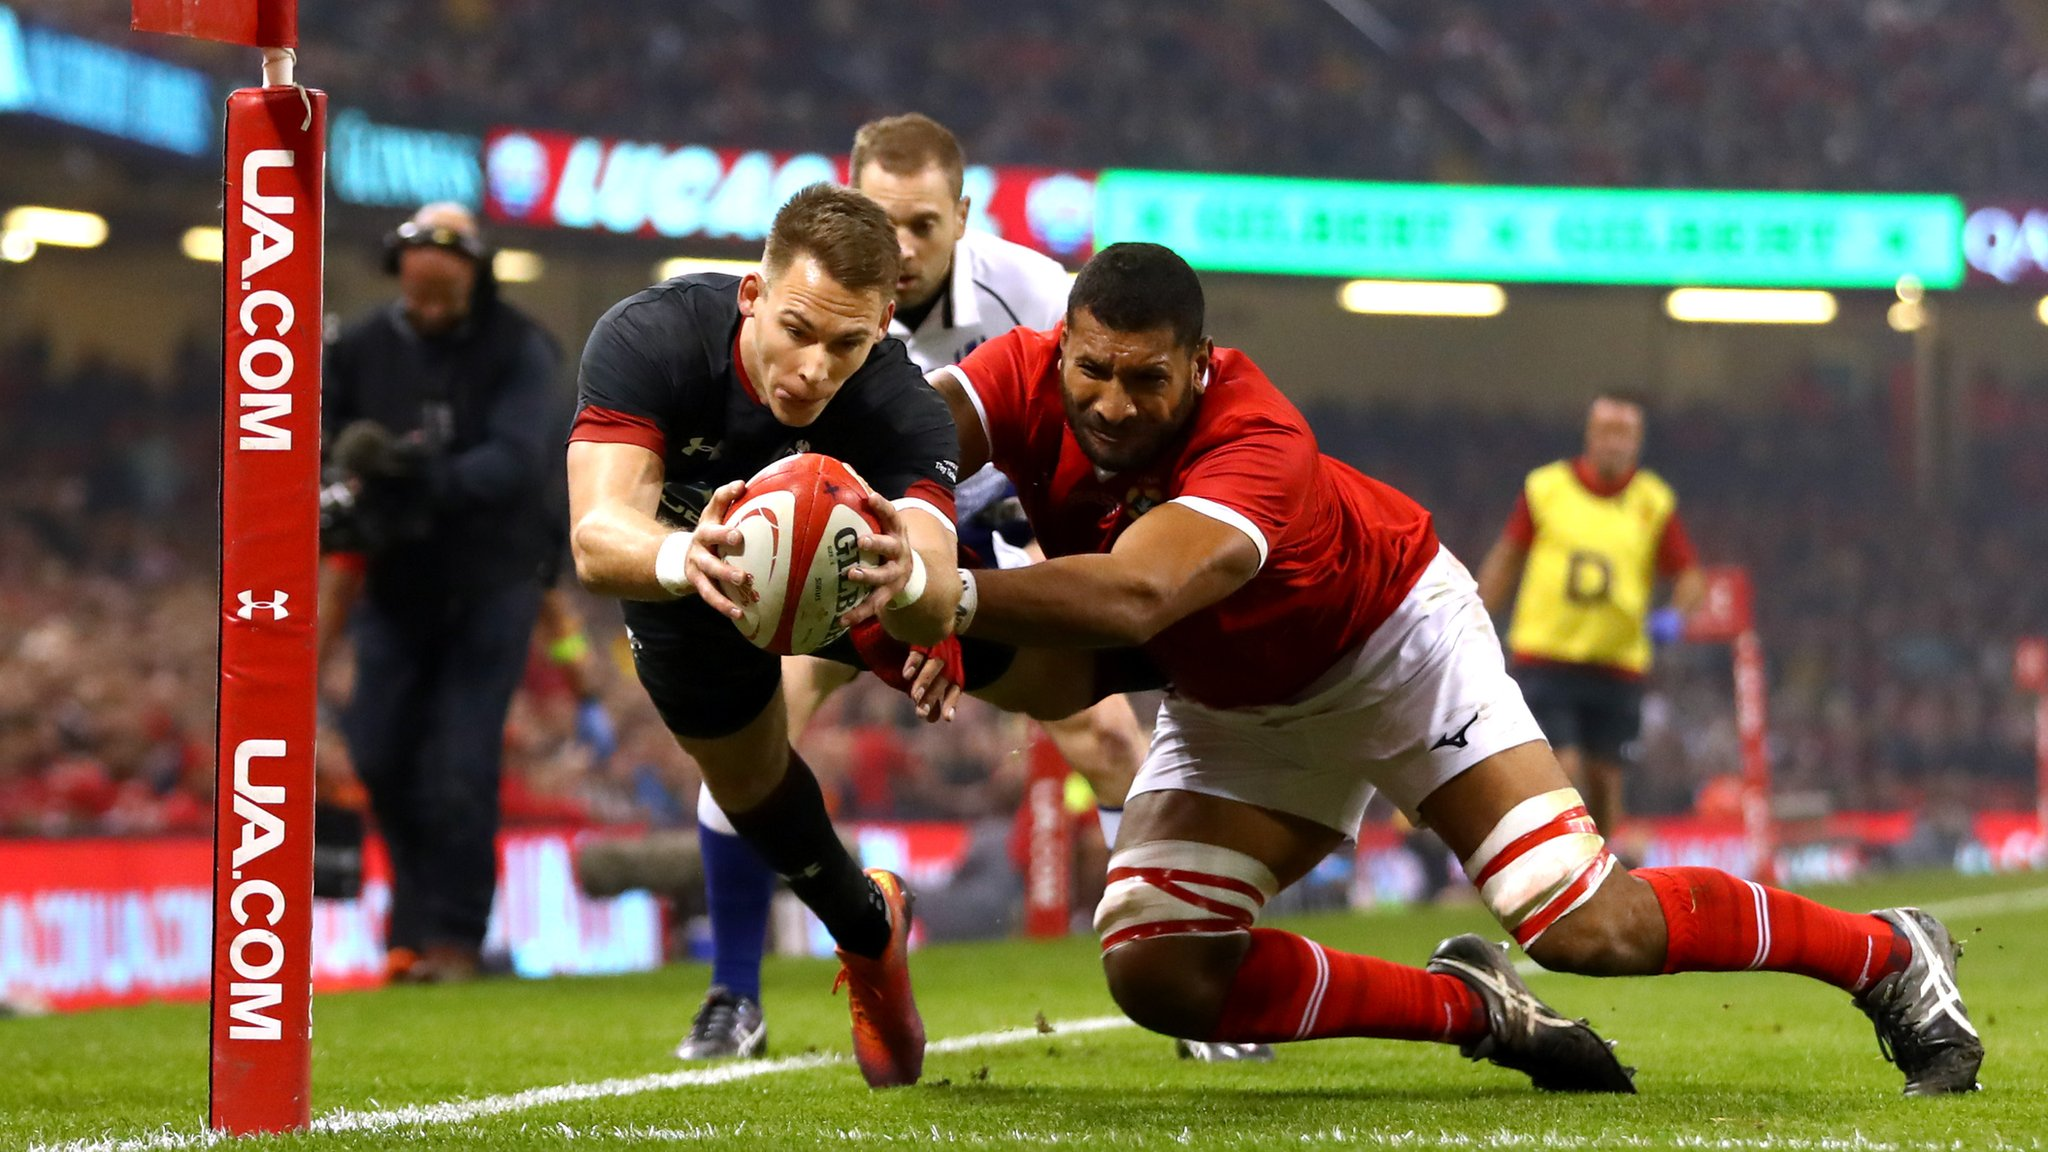 Wales v Tonga: Liam Williams touches down to lead